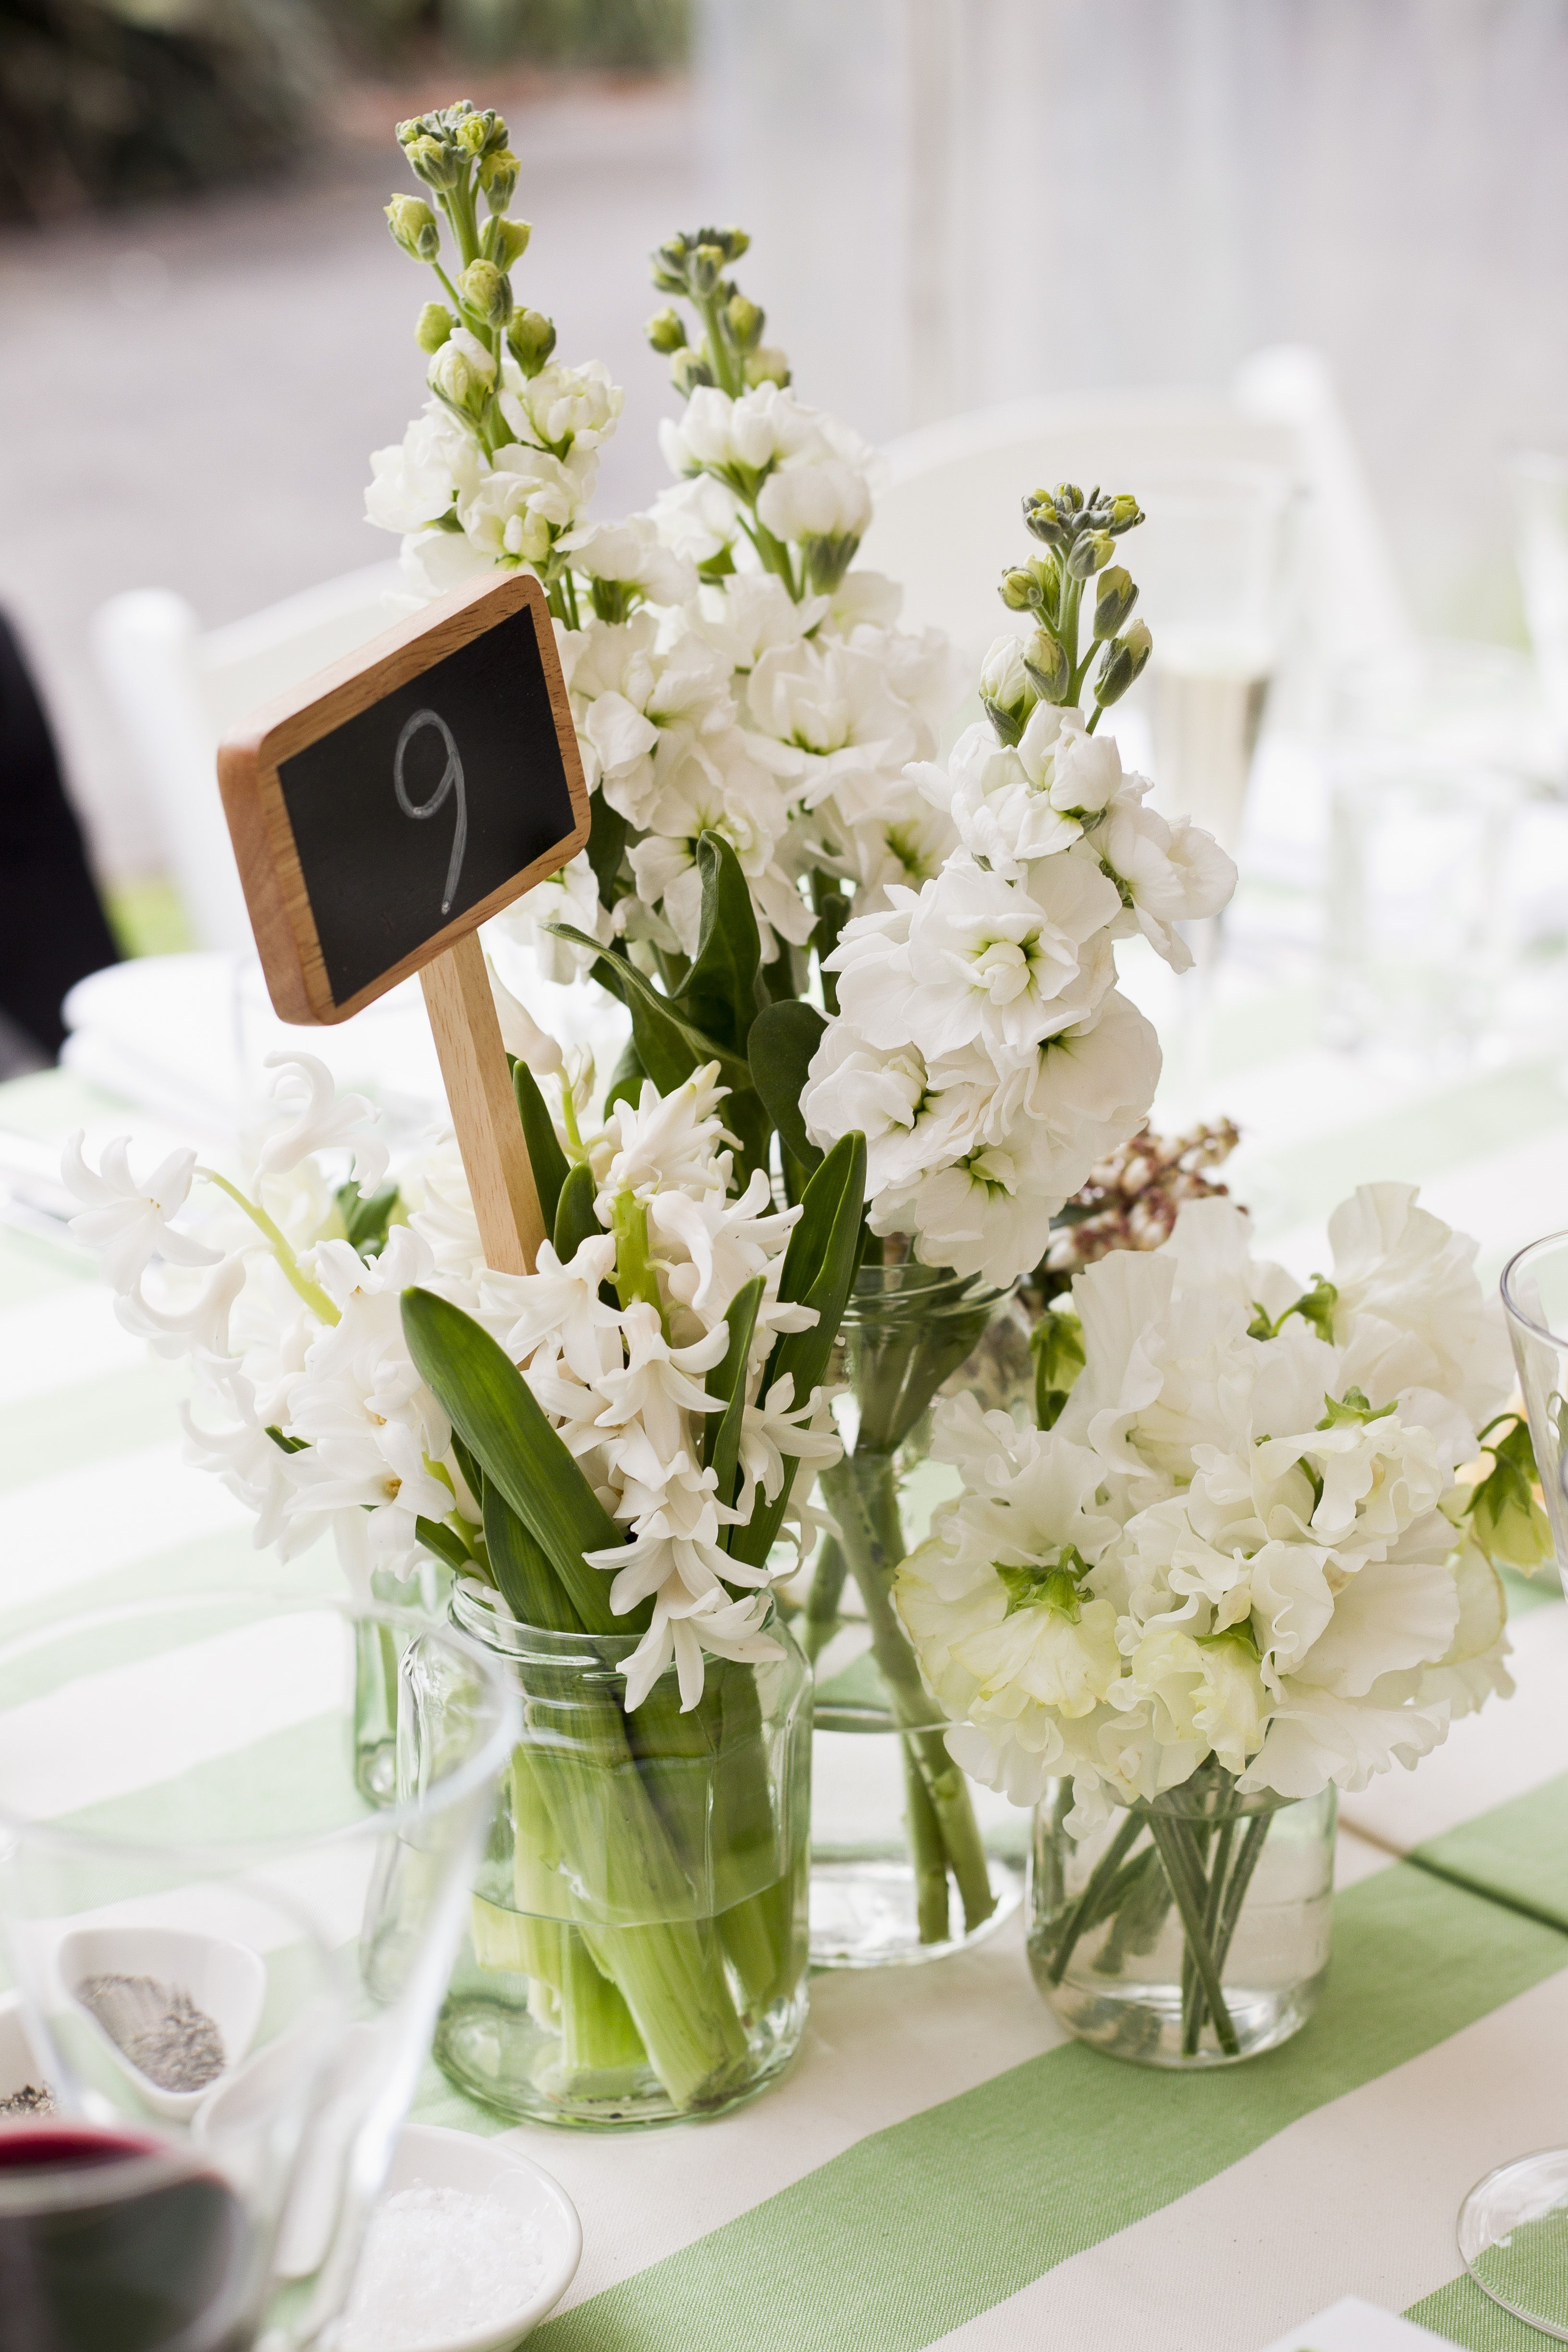 Wedding Corporate Catering Services Melbourne Peter Rowland Wedding Catering Event Catering Wedding